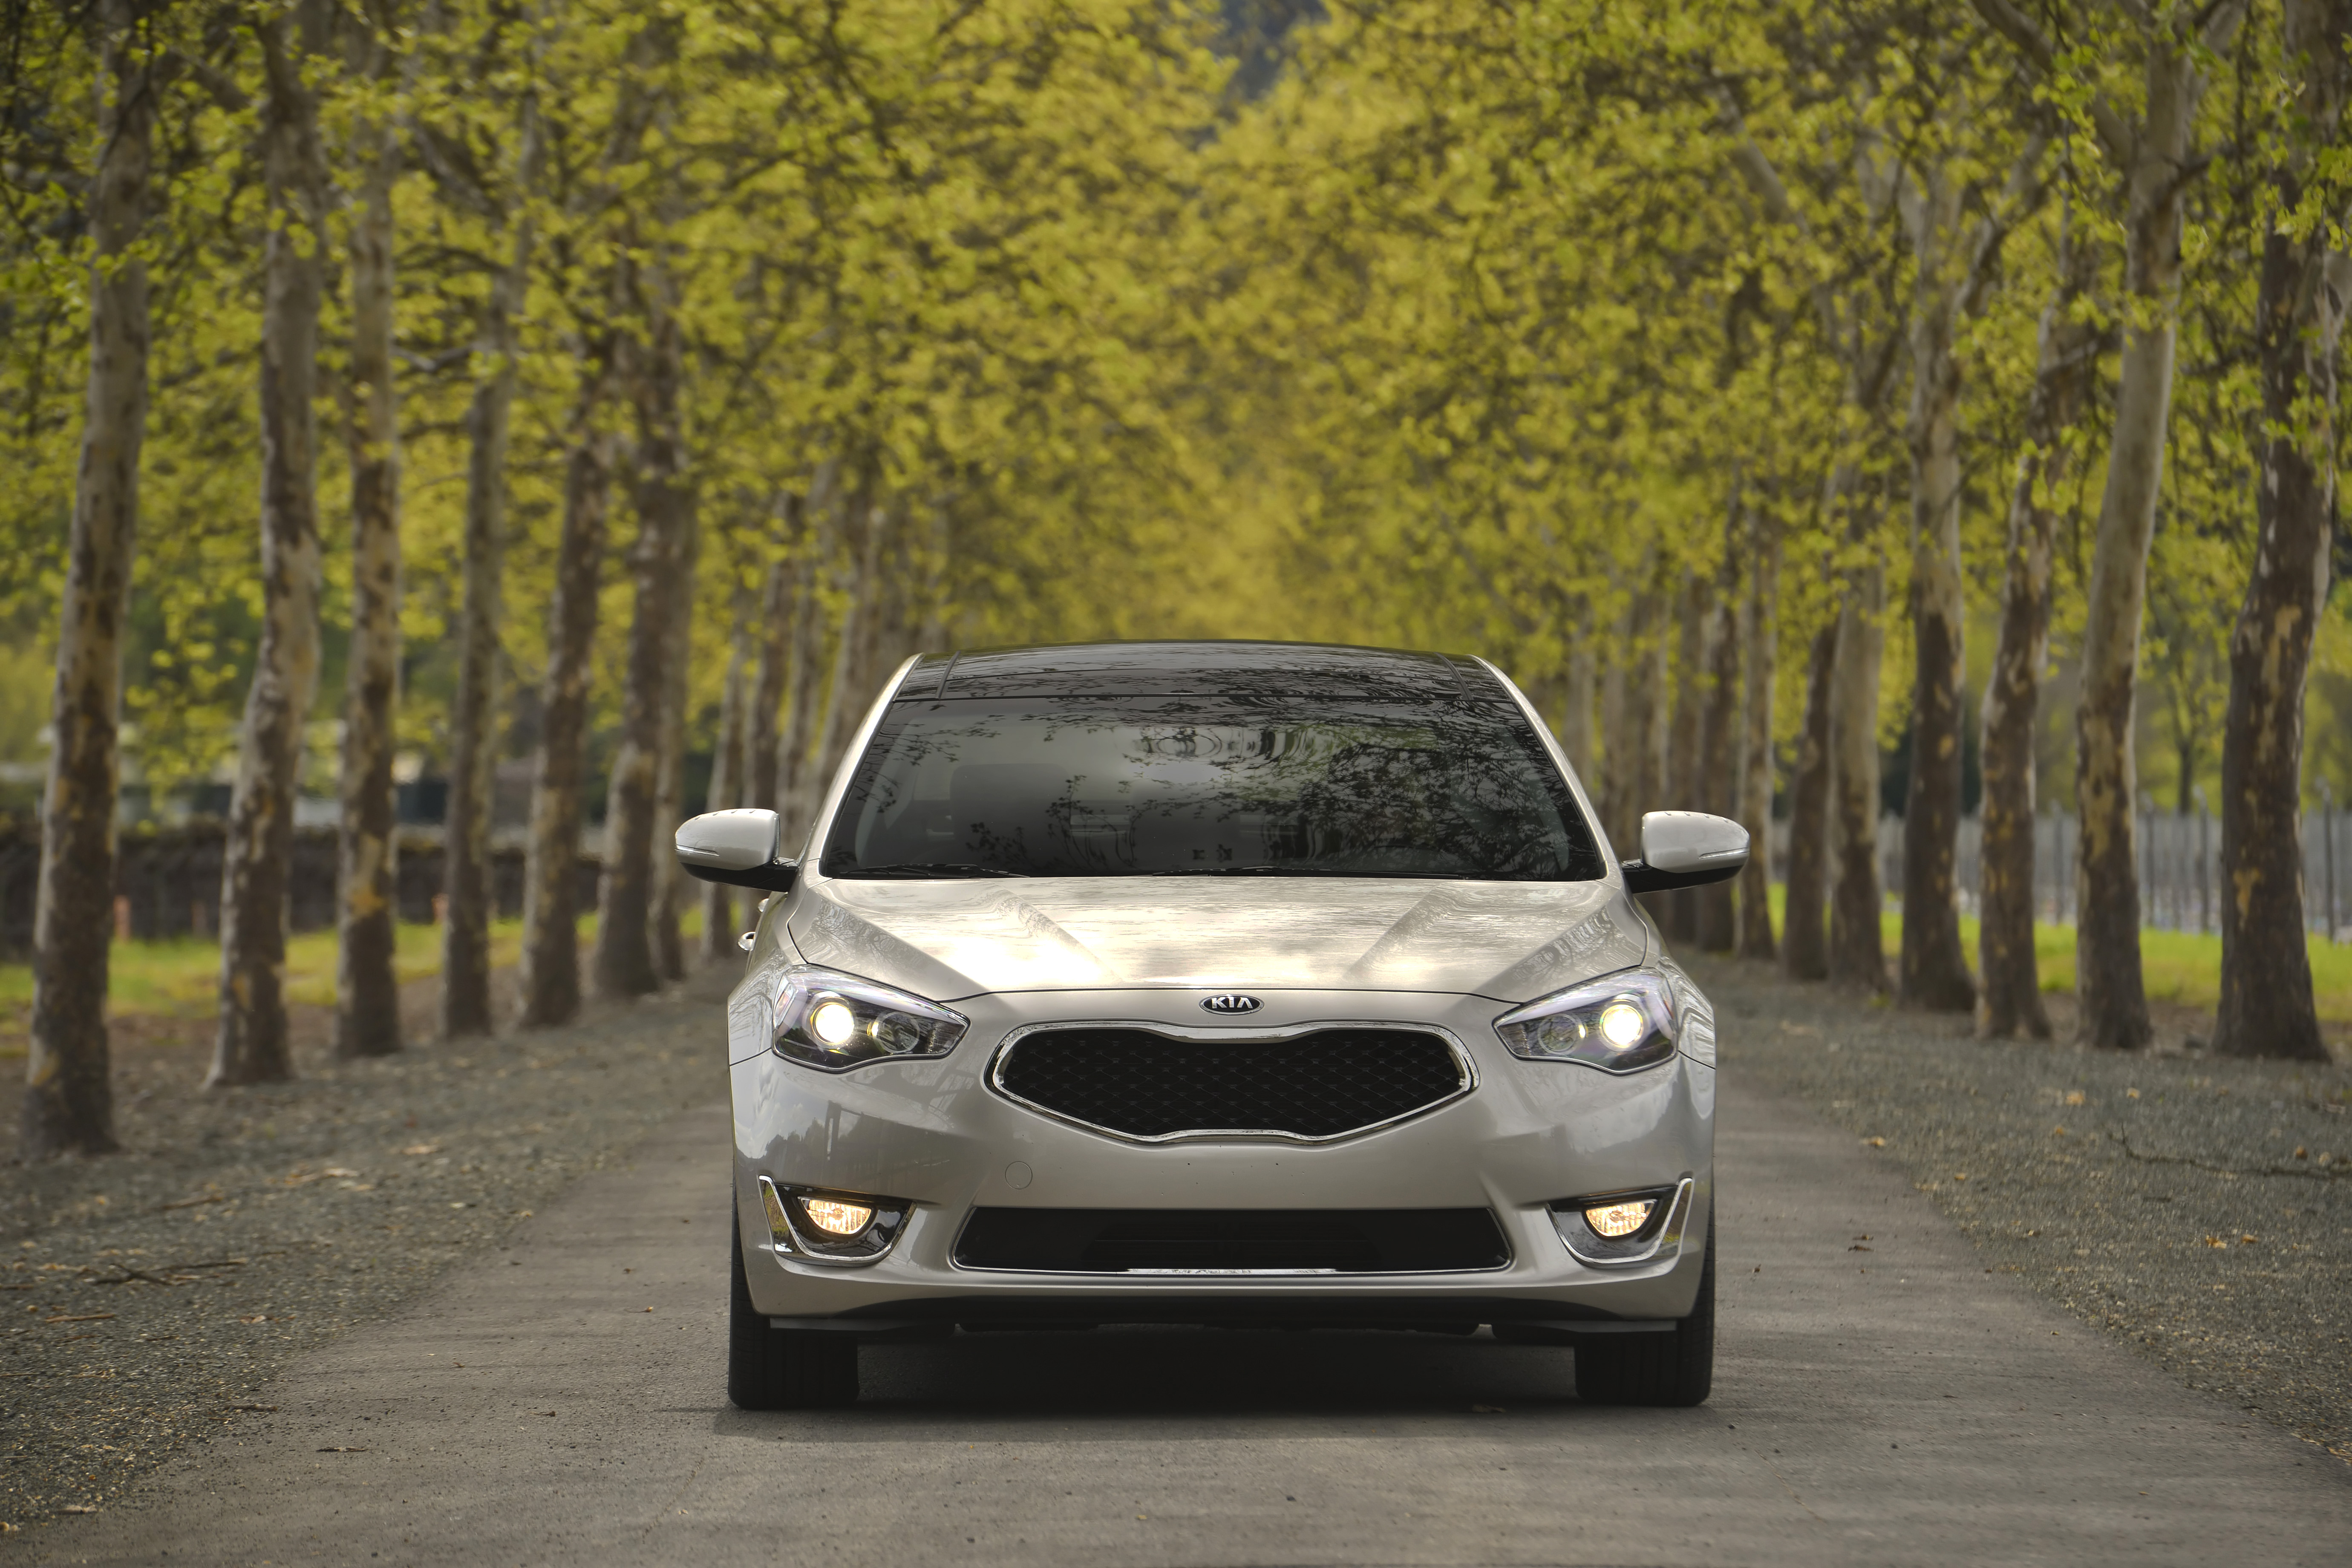 test comes cadenza john six road the safety topline loaded s leblanc features straight premium and with kia luxury